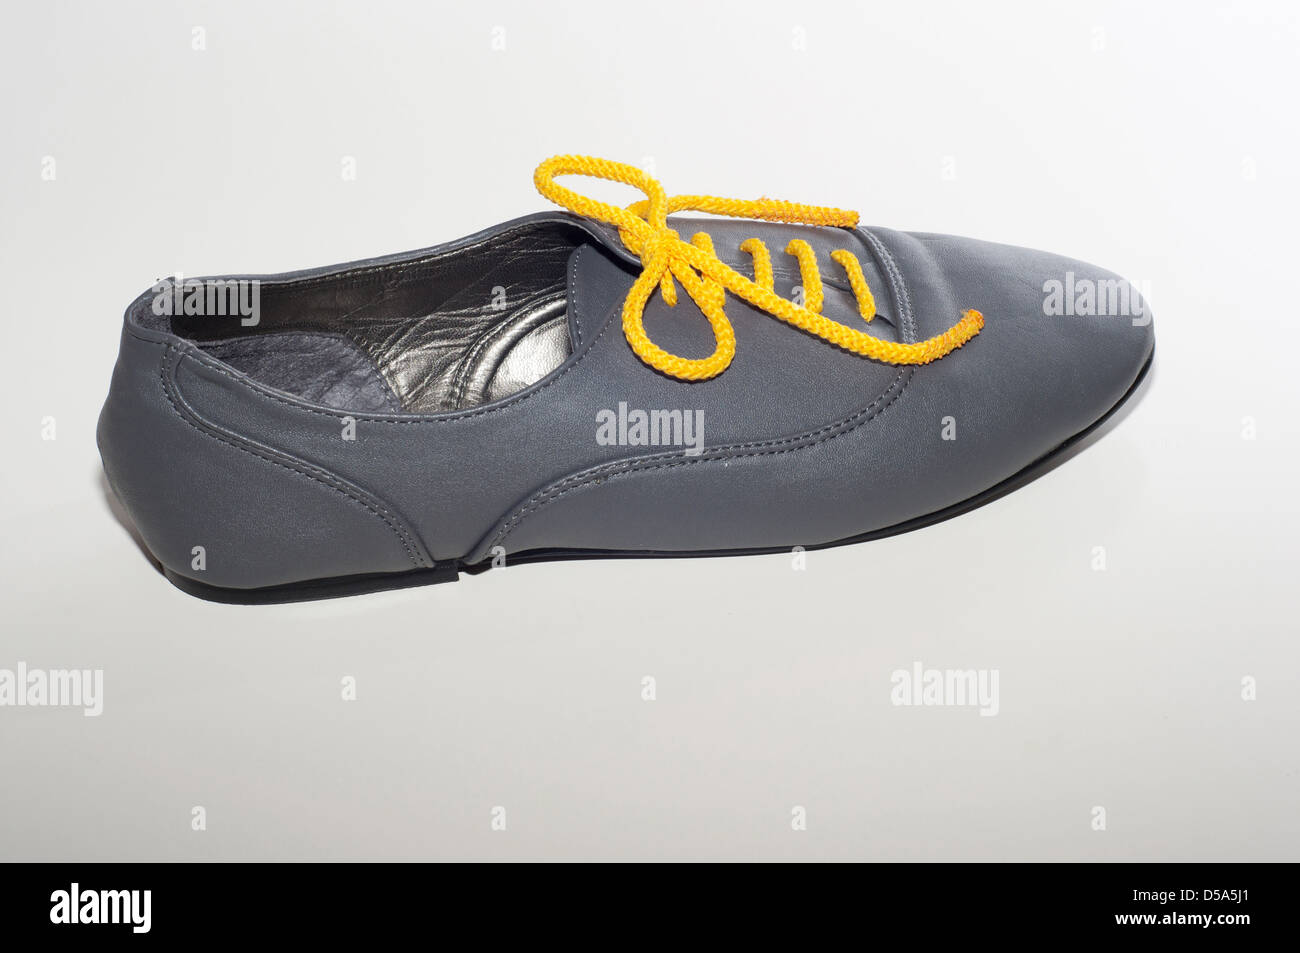 gray boot with yellow laces on a white background - Stock Image